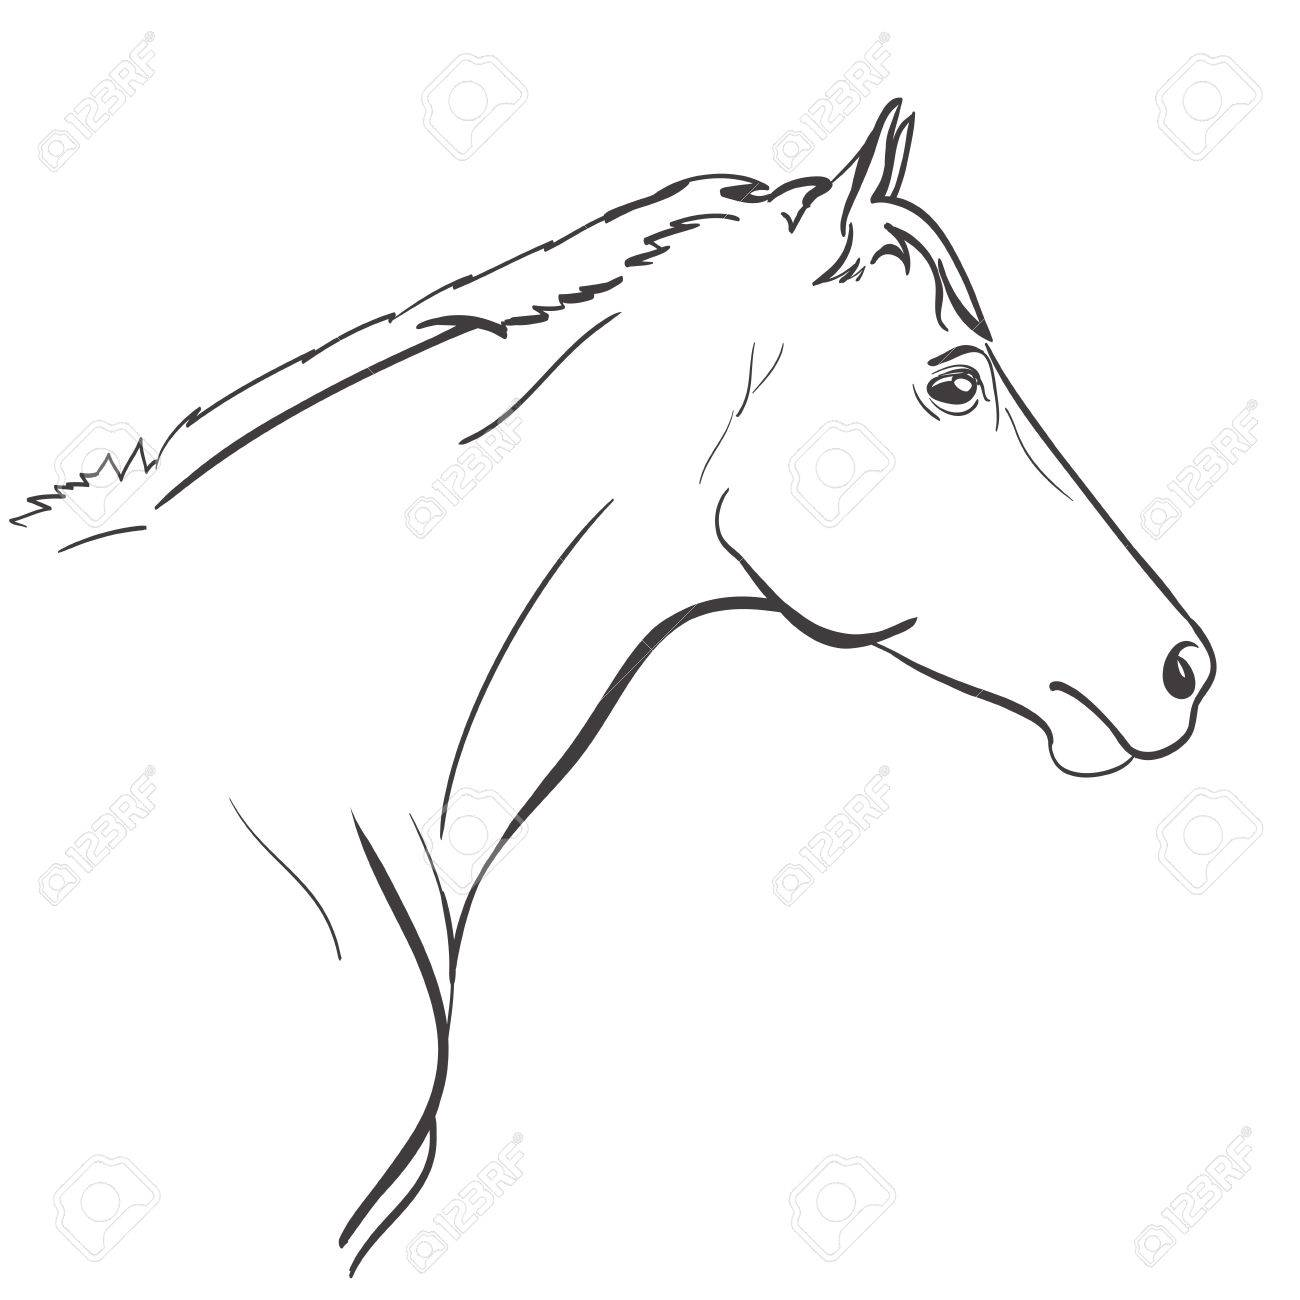 Horse Head Line Art Hand Drawn Illustration Vector Royalty Free Cliparts Vectors And Stock Illustration Image 62334798